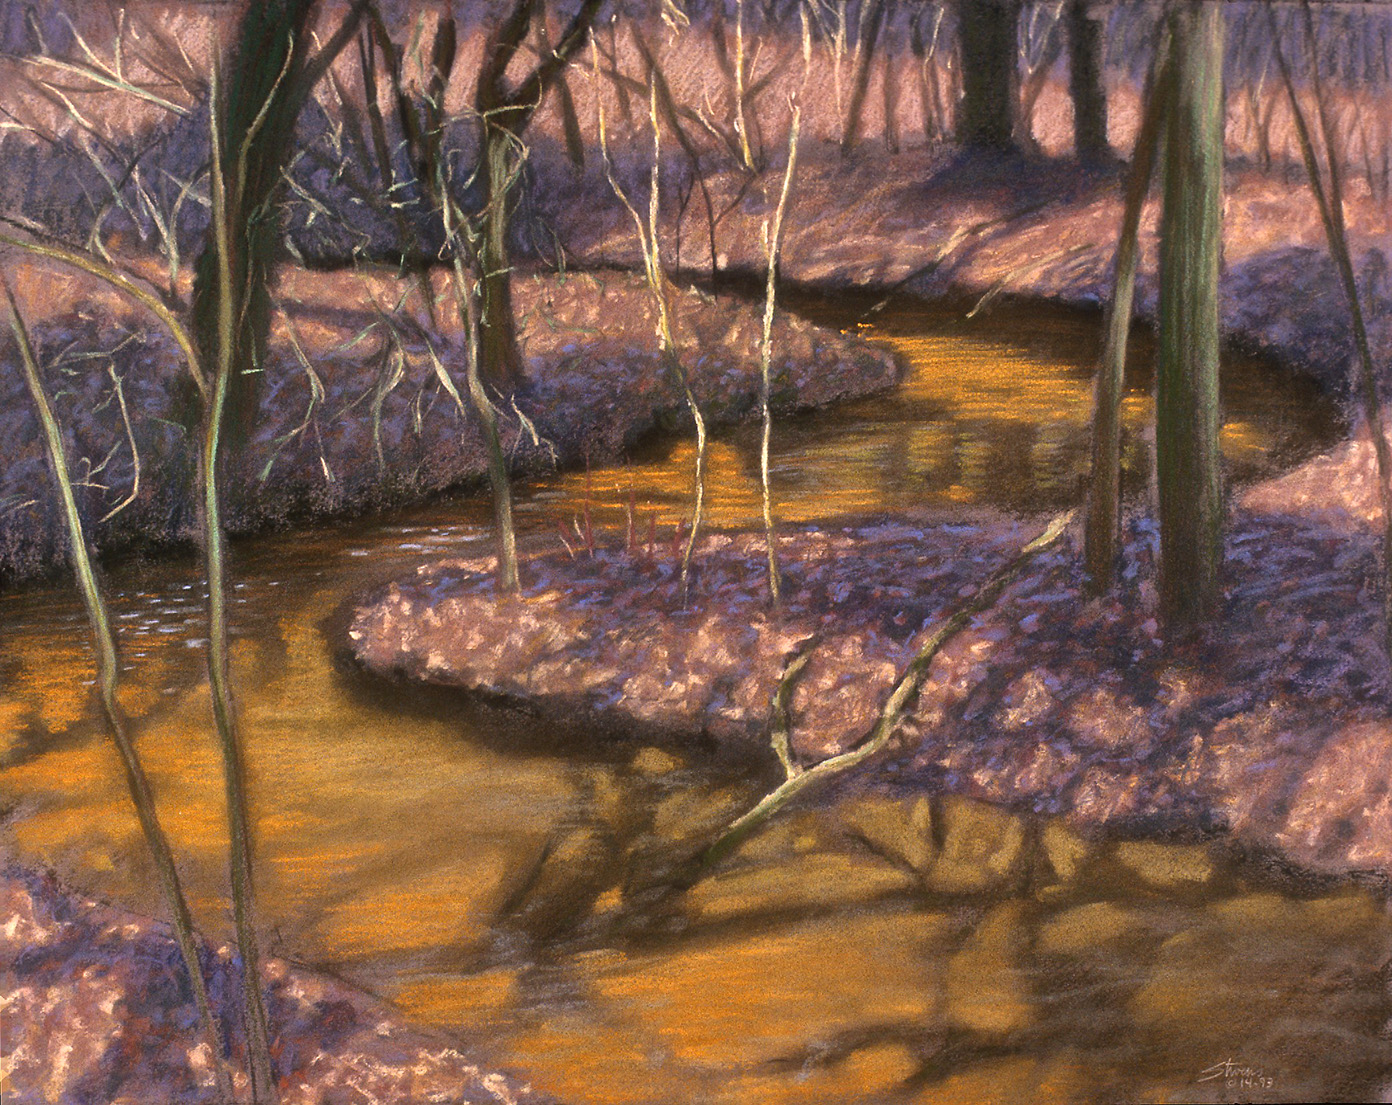 Ball Creek   | pastel on paper | 17 x 22"